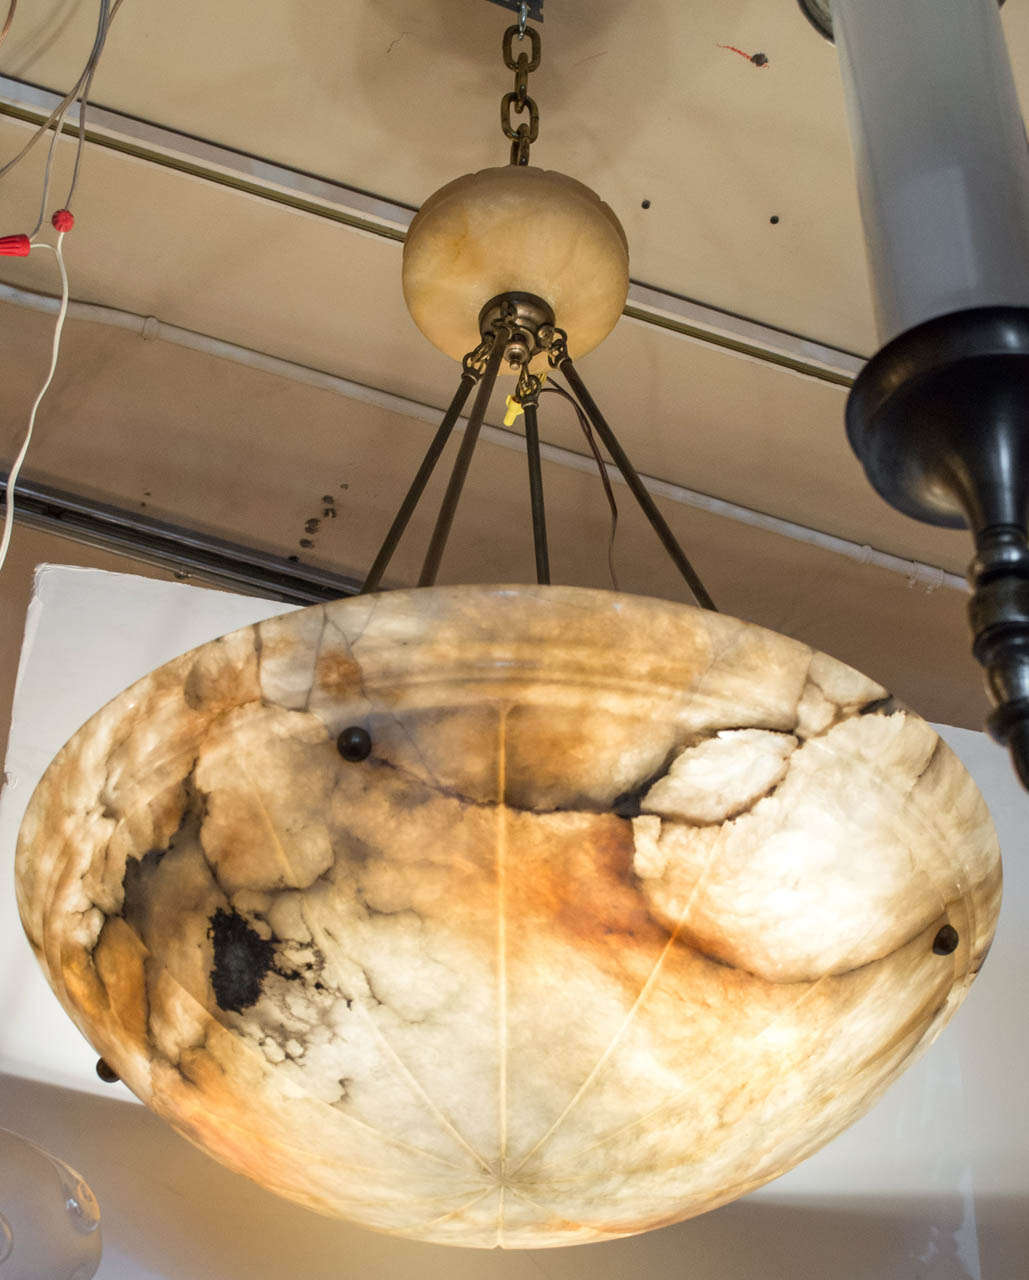 Super Luscious Large Alabaster Bowl Pendant Chandelier For We Try To Stay Objective In Our Title But As You Look At This